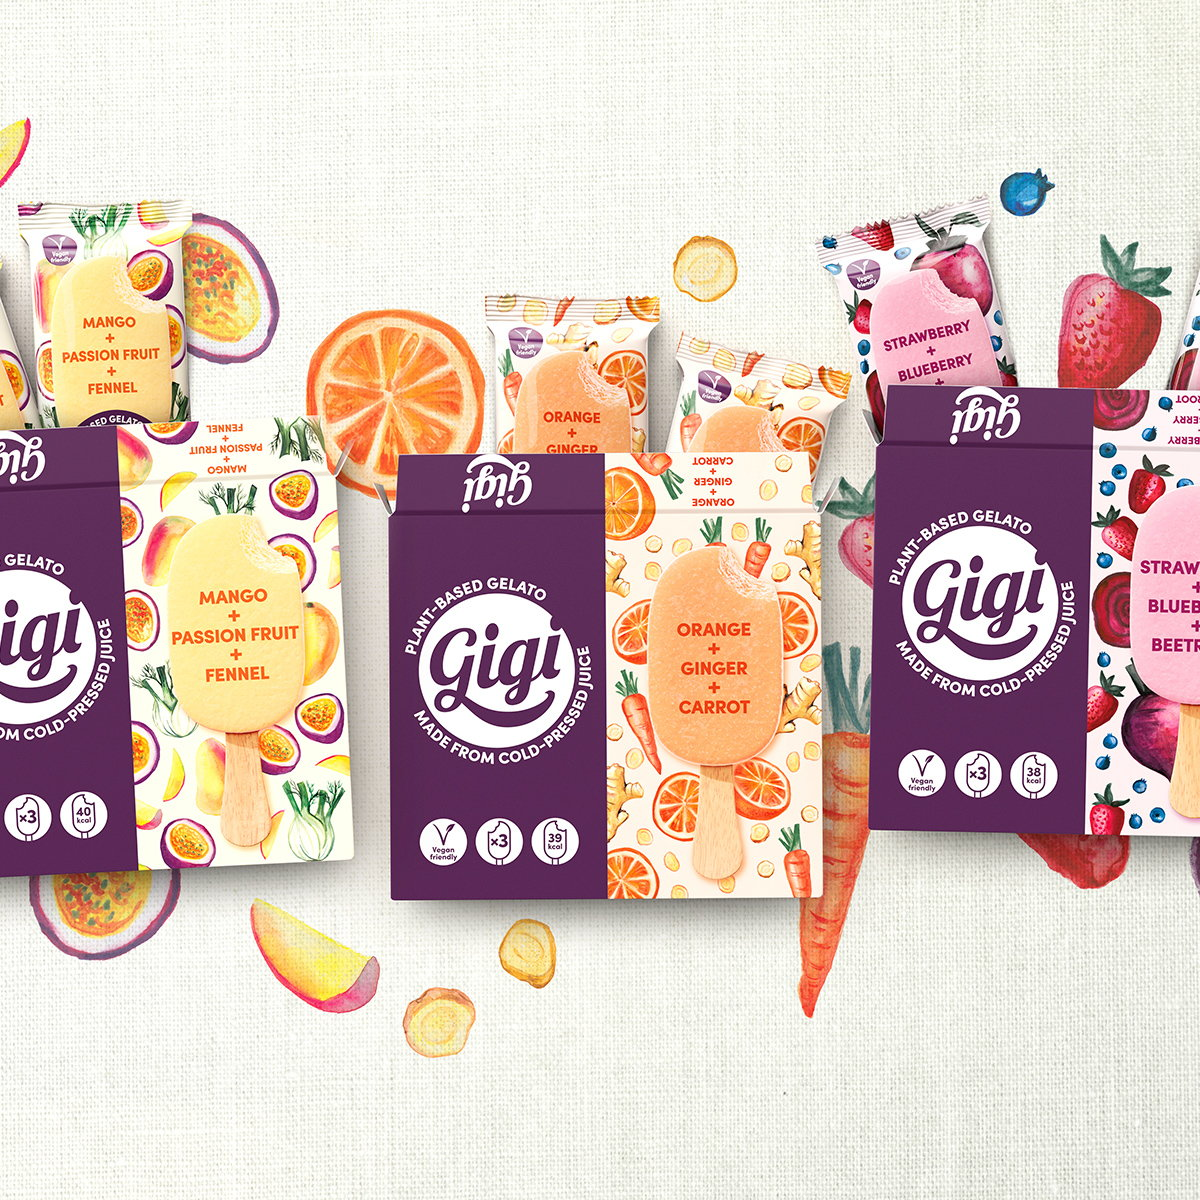 Straight Forward Designs Brand and Packaging for Plant-based Gelato 'Gigi'